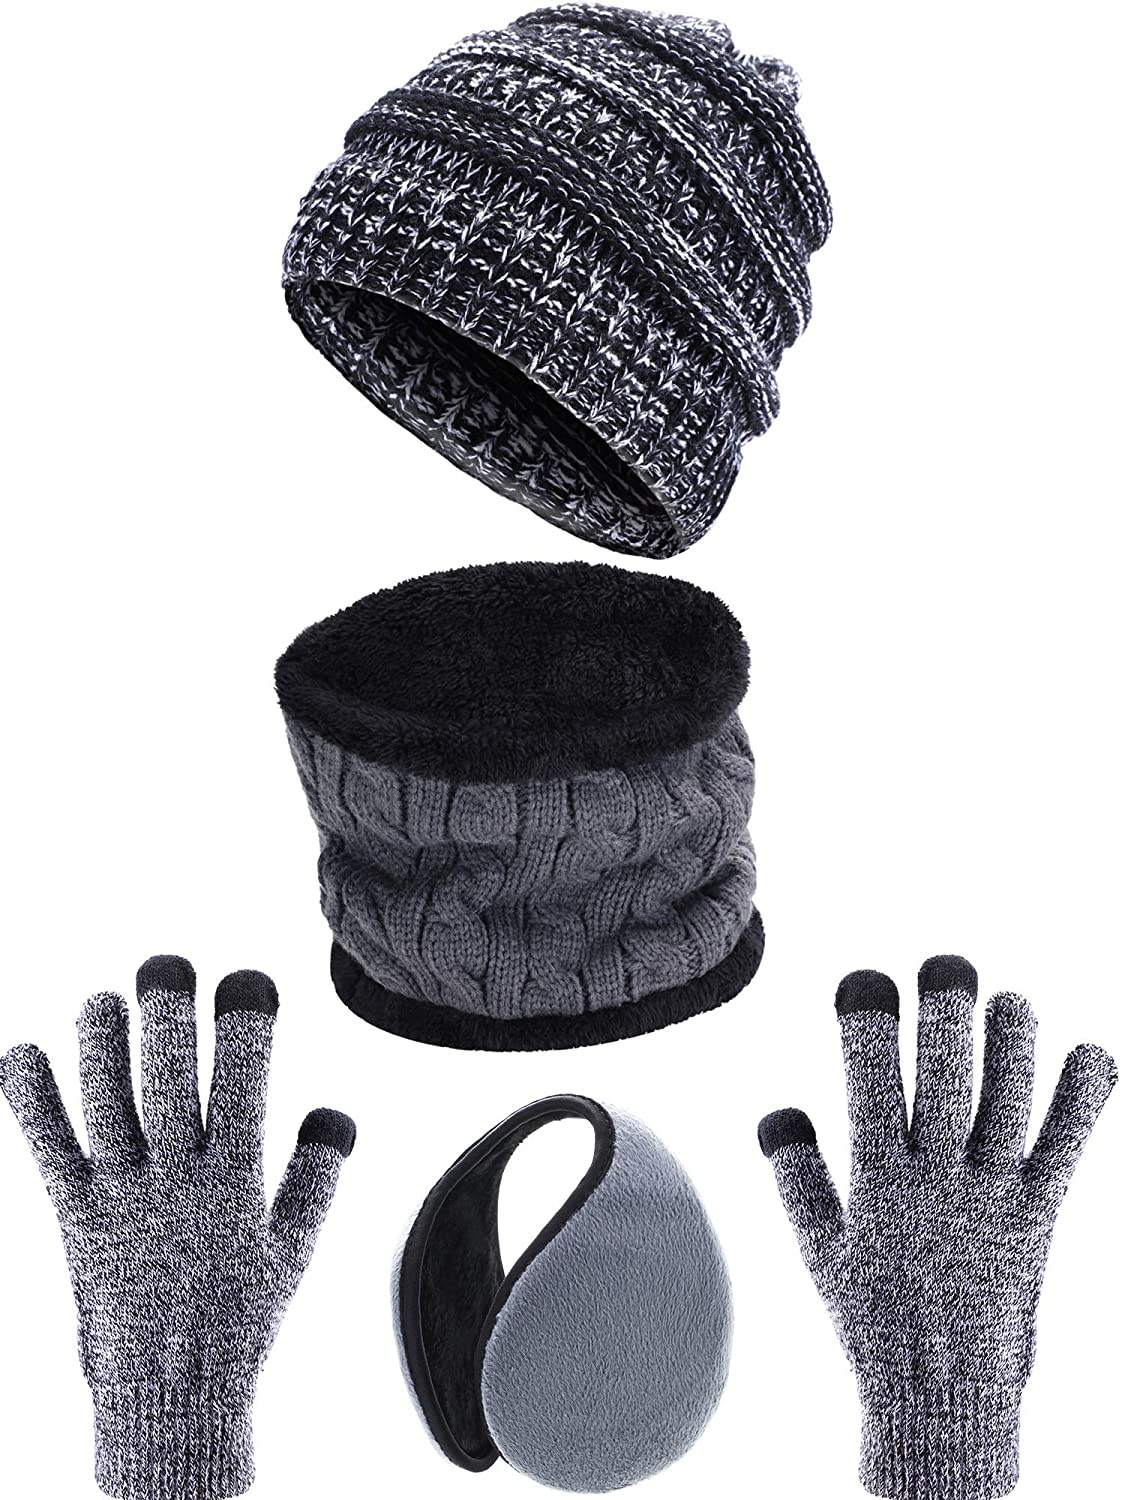 4 Pieces Ski Warm Set Includes Winter Beanie Hat Circle Scarf Outdoor Gloves and Ear Warmer for Adults Kids